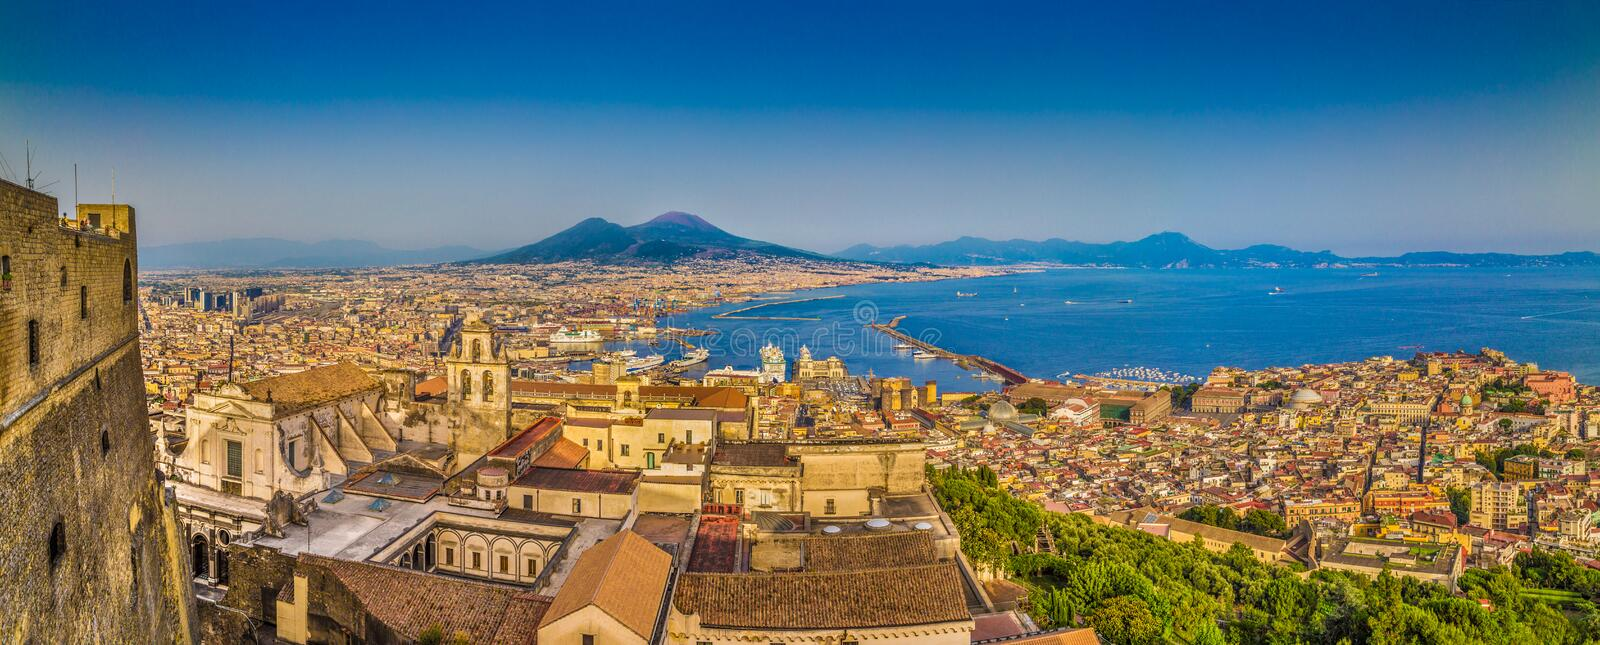 City of Naples with Mt. Vesuvius at sunset, Campania, Italy. Panoramic view of the city of Napoli (Naples) with famous Mount Vesuvius in the background in golden royalty free stock photography